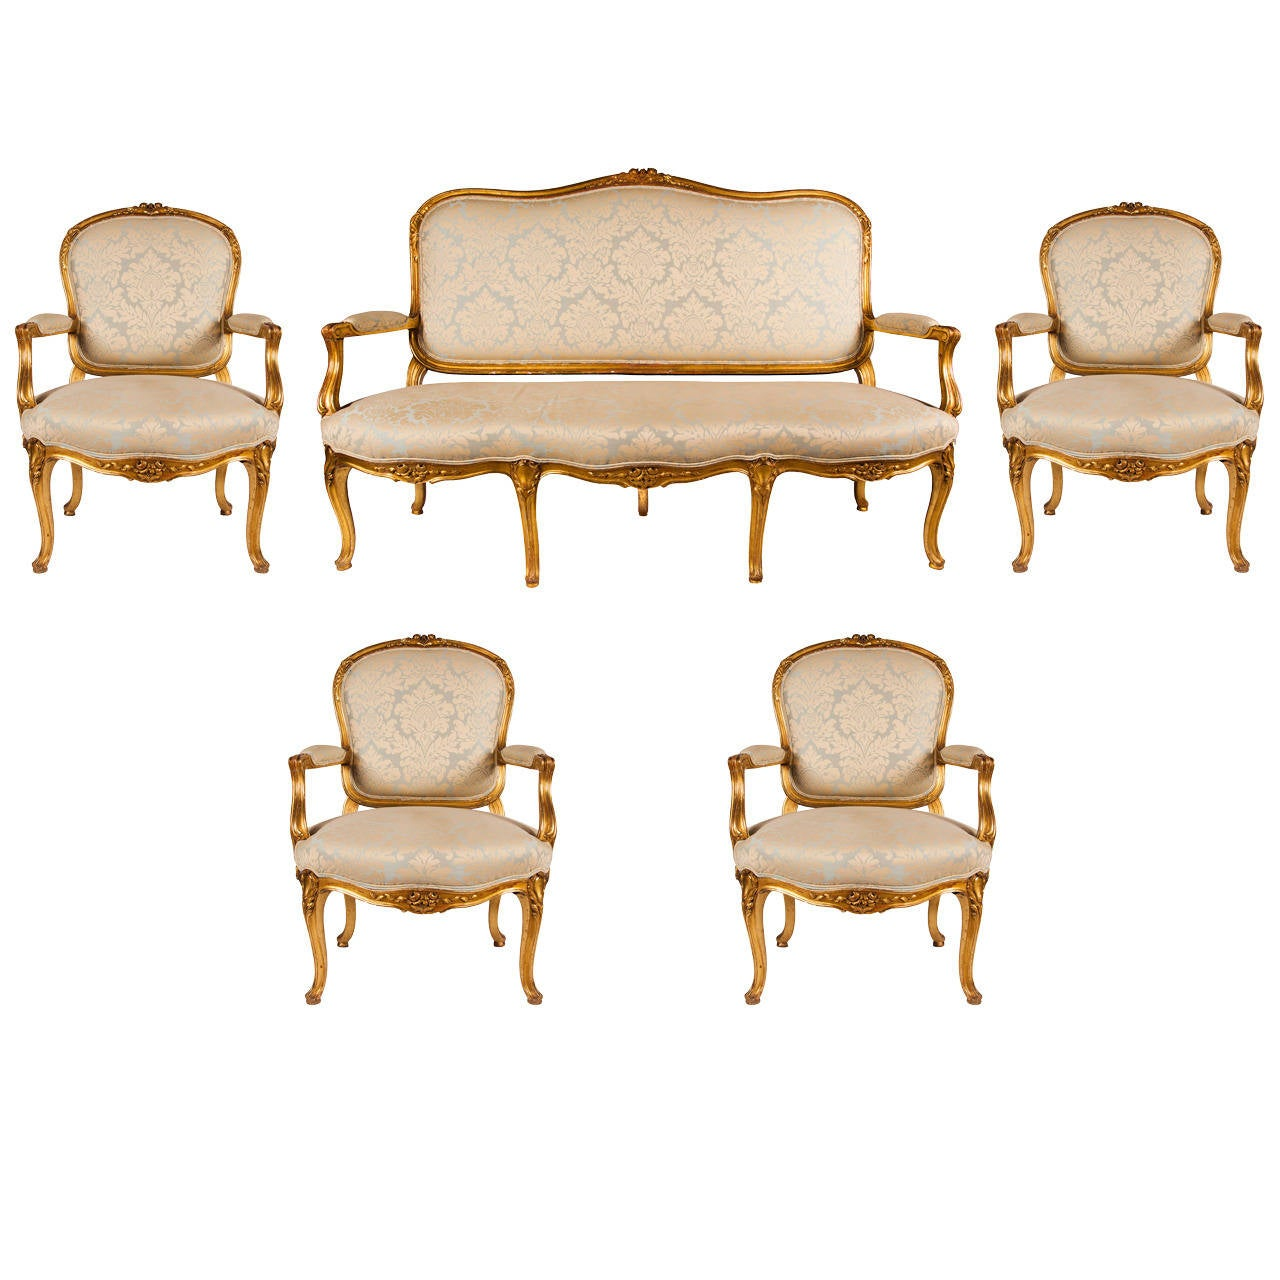 Fine Louis XV Style Giltwood Five Piece Salon Suite At 1stdibs